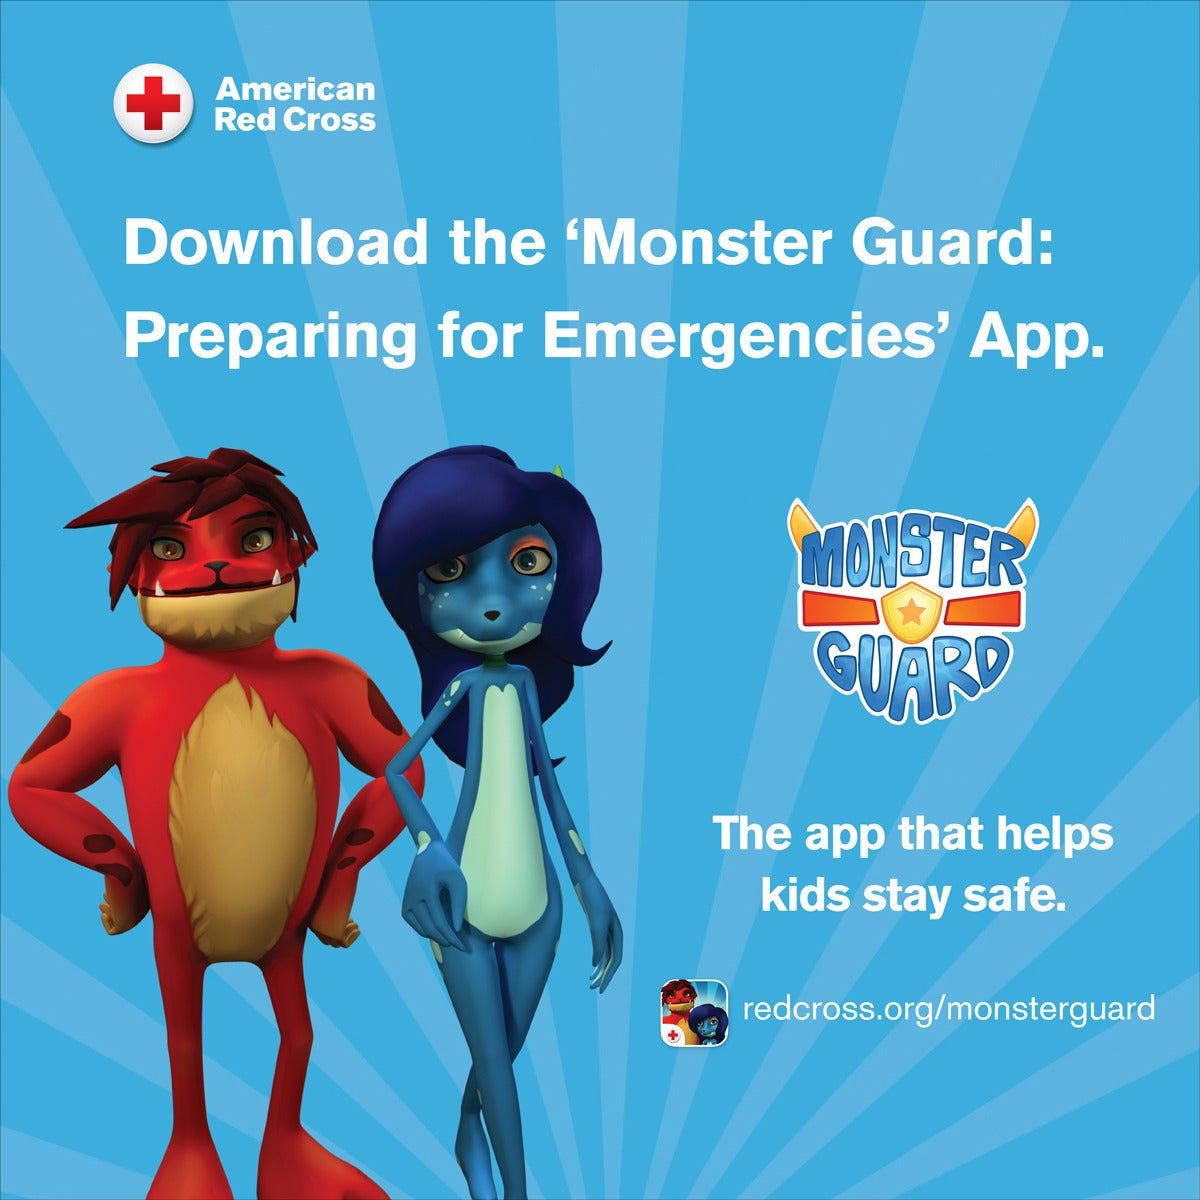 @RedCross has resources for both teachers and parents who are interested in teaching kids about emergencies and #Preparedness  They also have an app about preparedness made for kids!    #NationalPreparednessMonth #YouthPrep